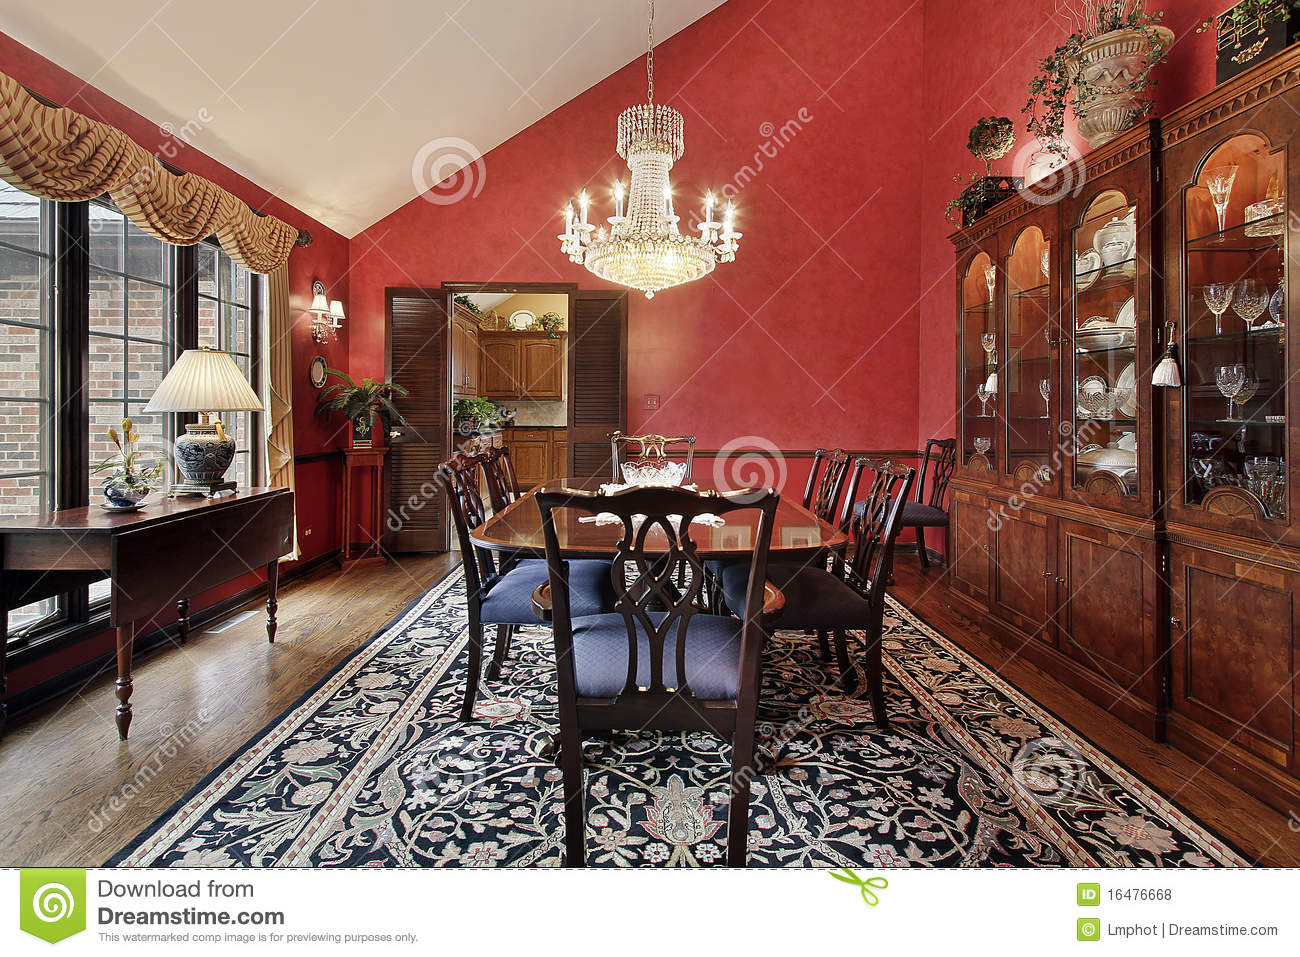 Dining Room With Red Walls Royalty Free Stock Photos